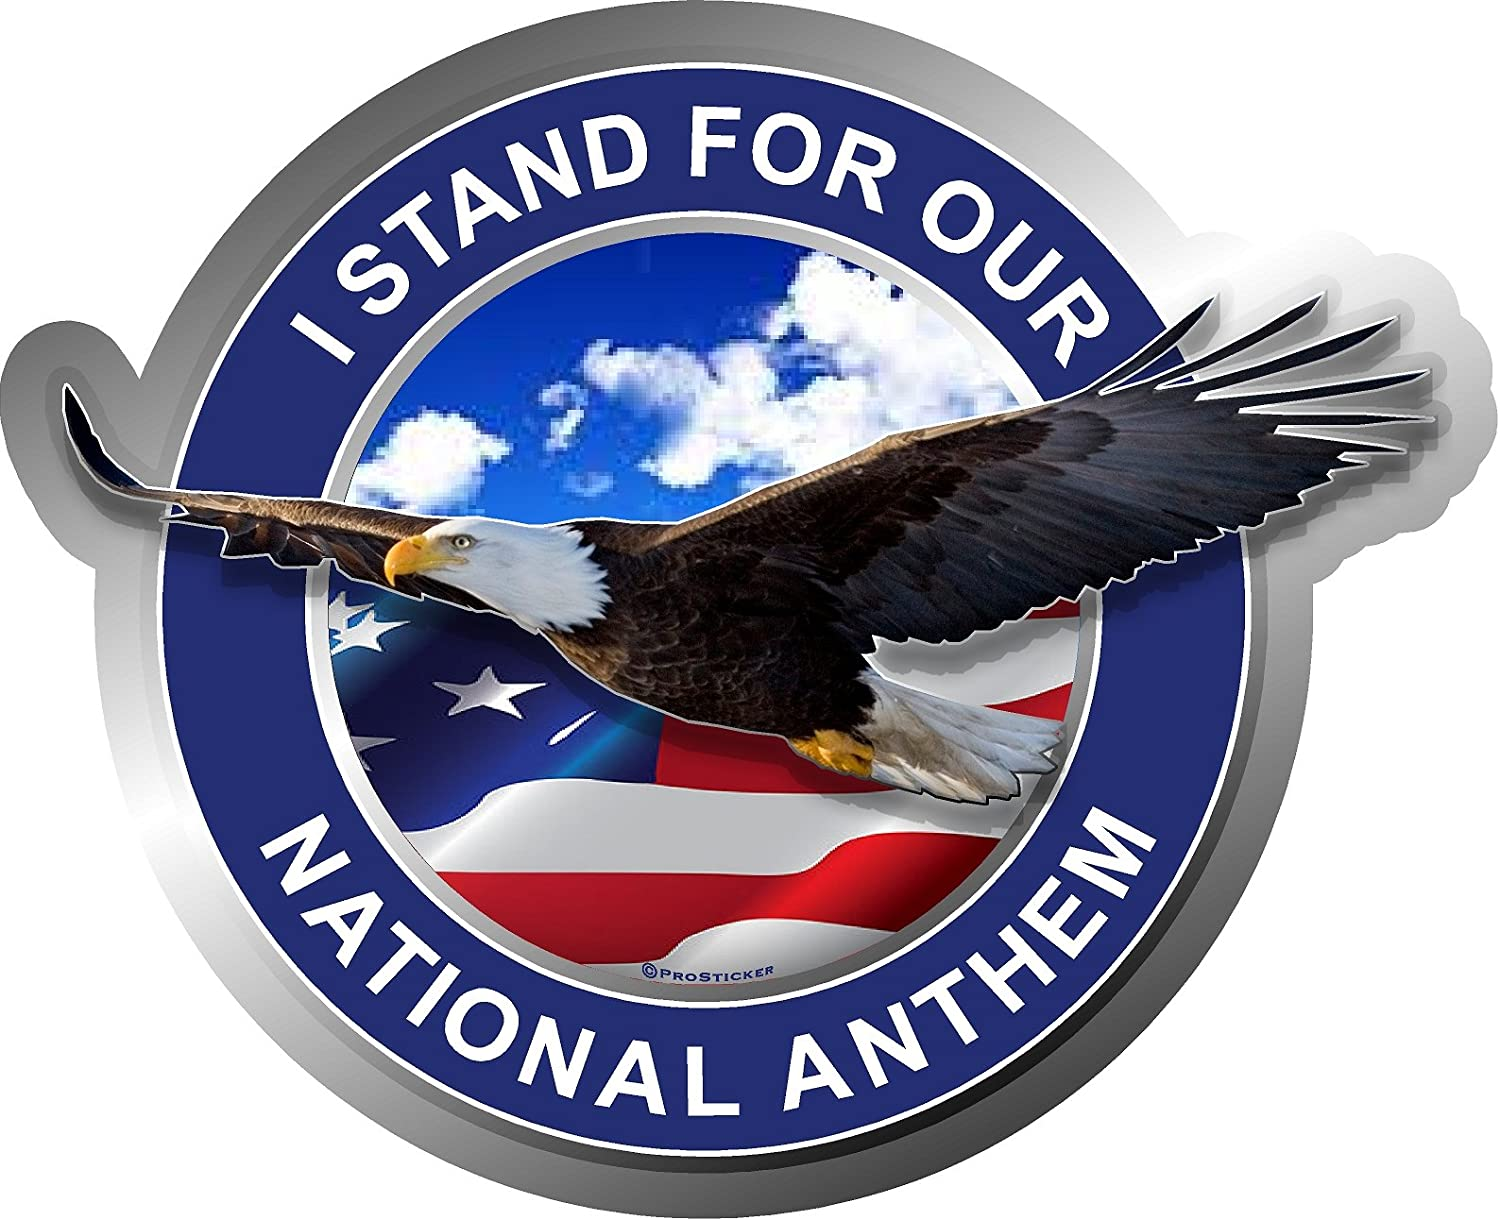 """ProSticker 231V (One) Patriot Series I Stand for Our National Anthem Eagle Decal Sticker (4"""" x 5"""")"""